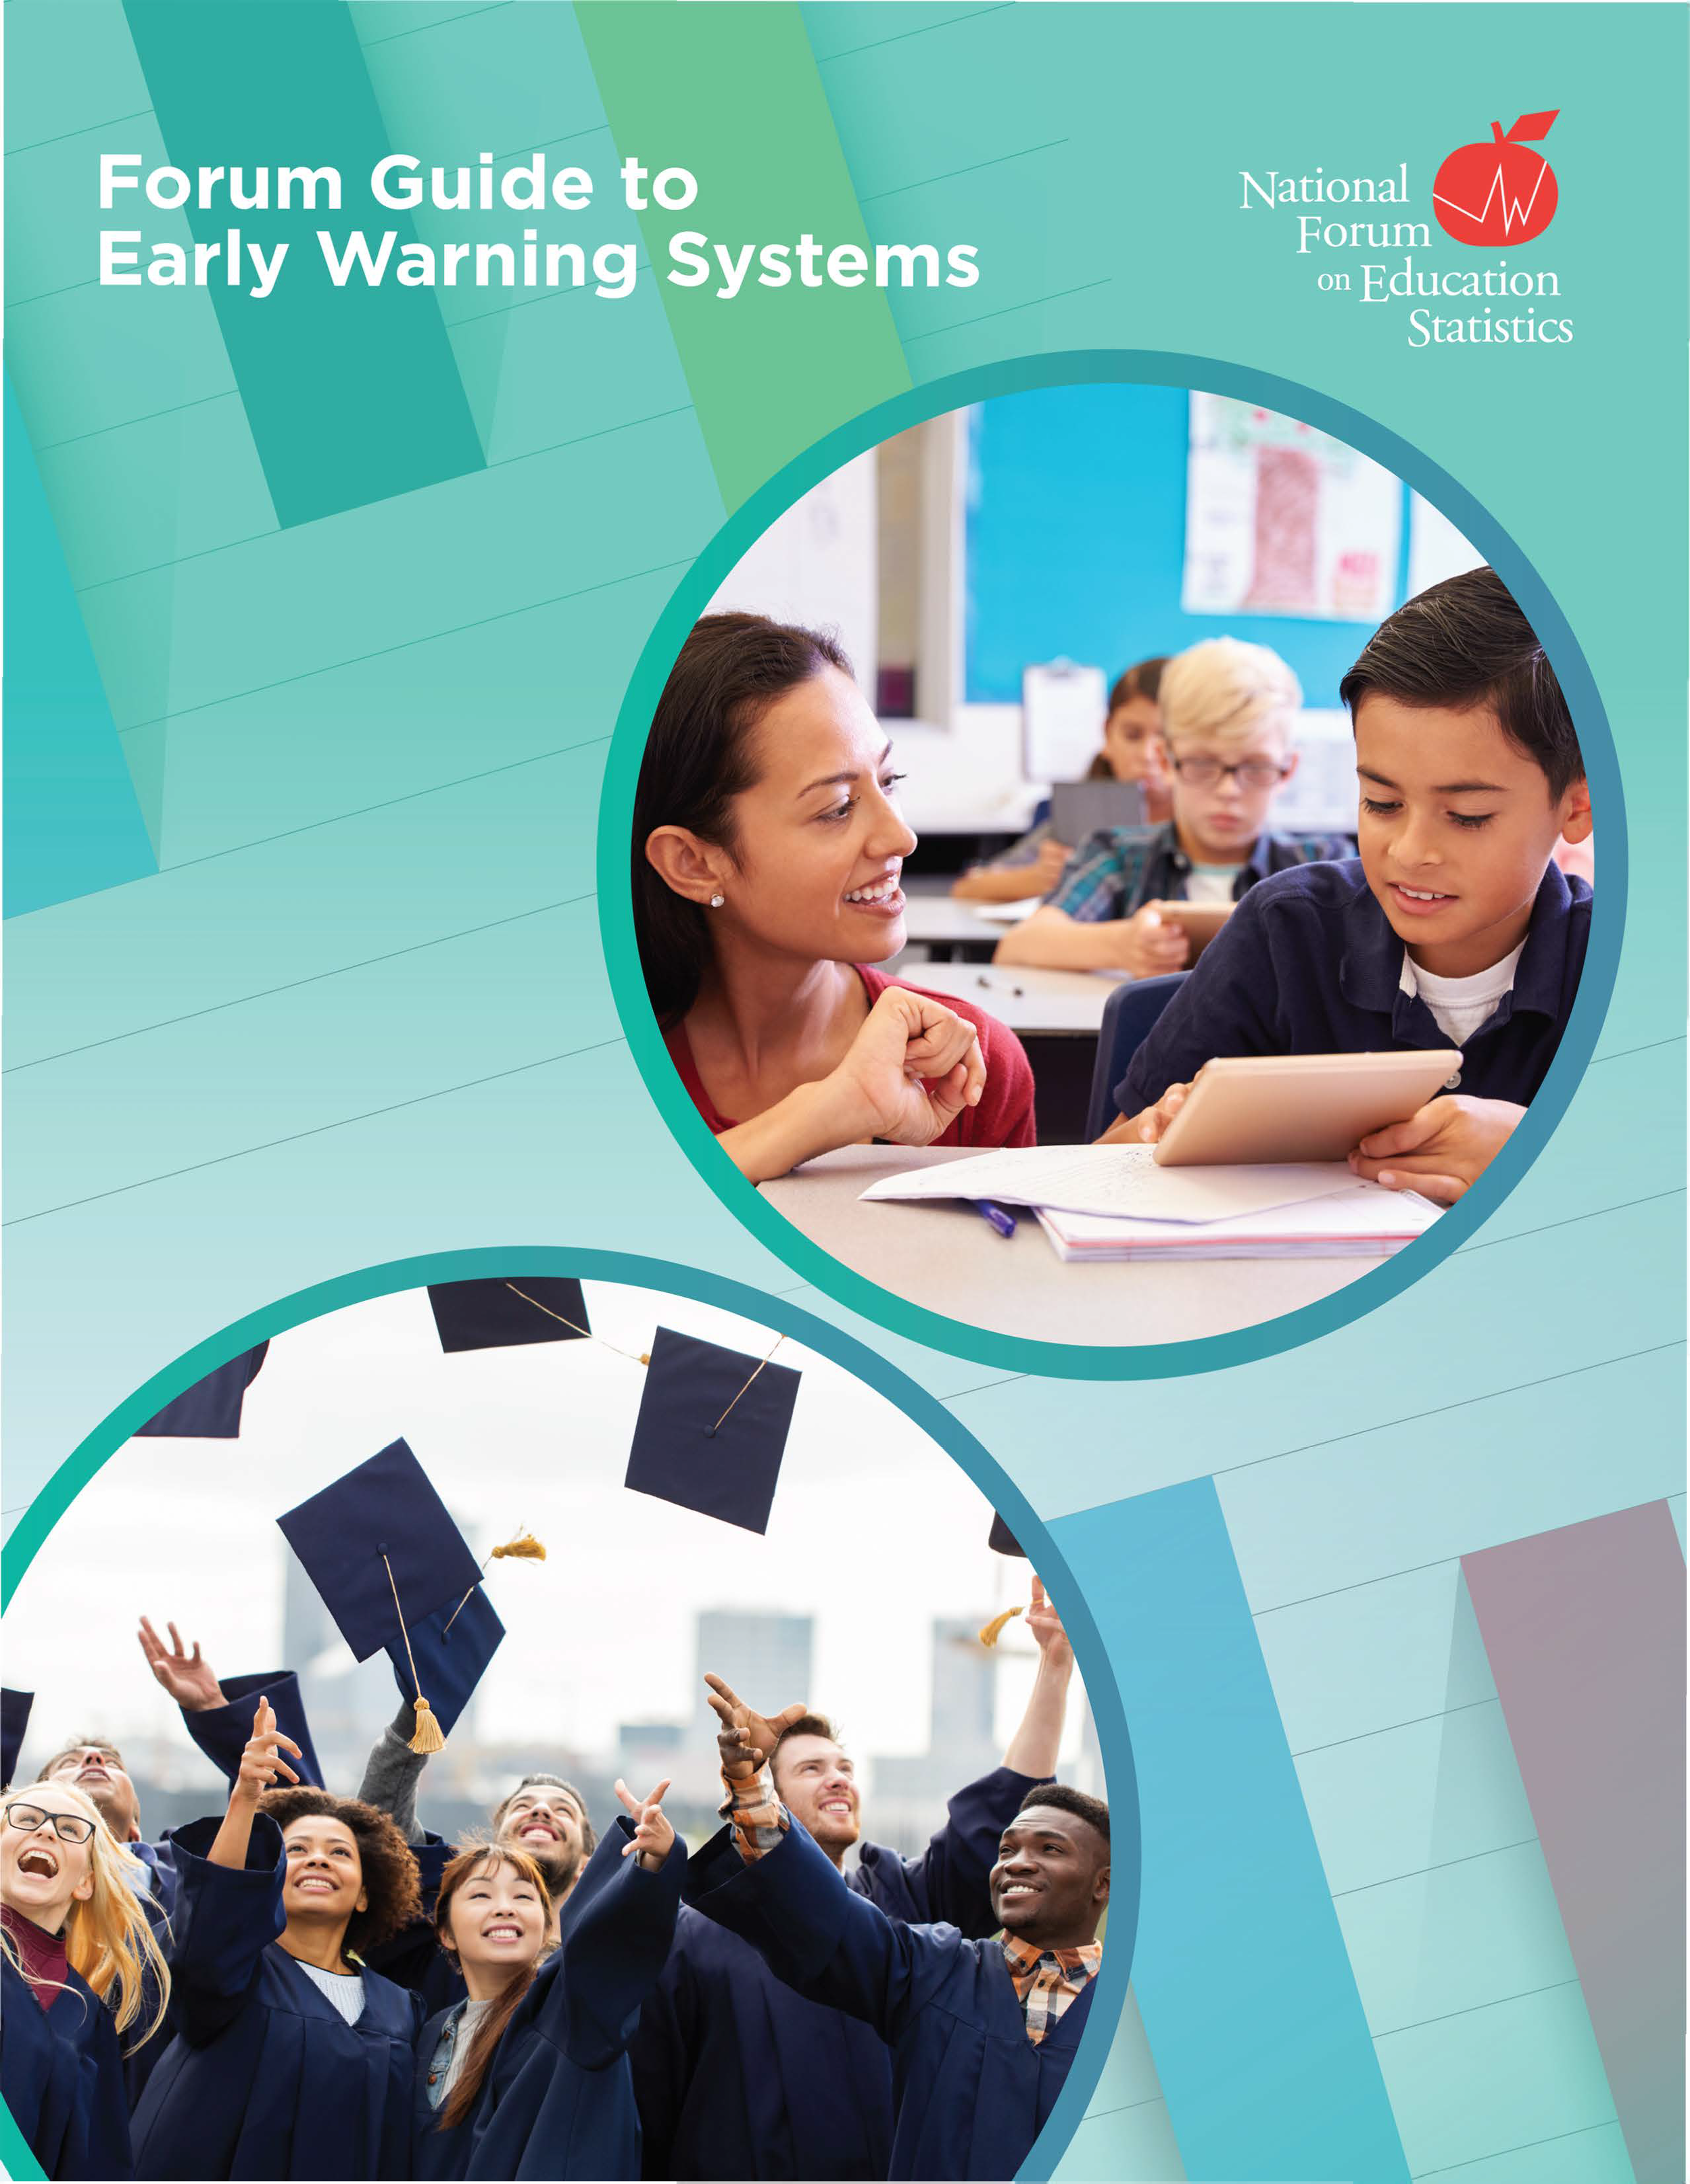 Forum Guide to Early Warning Systems